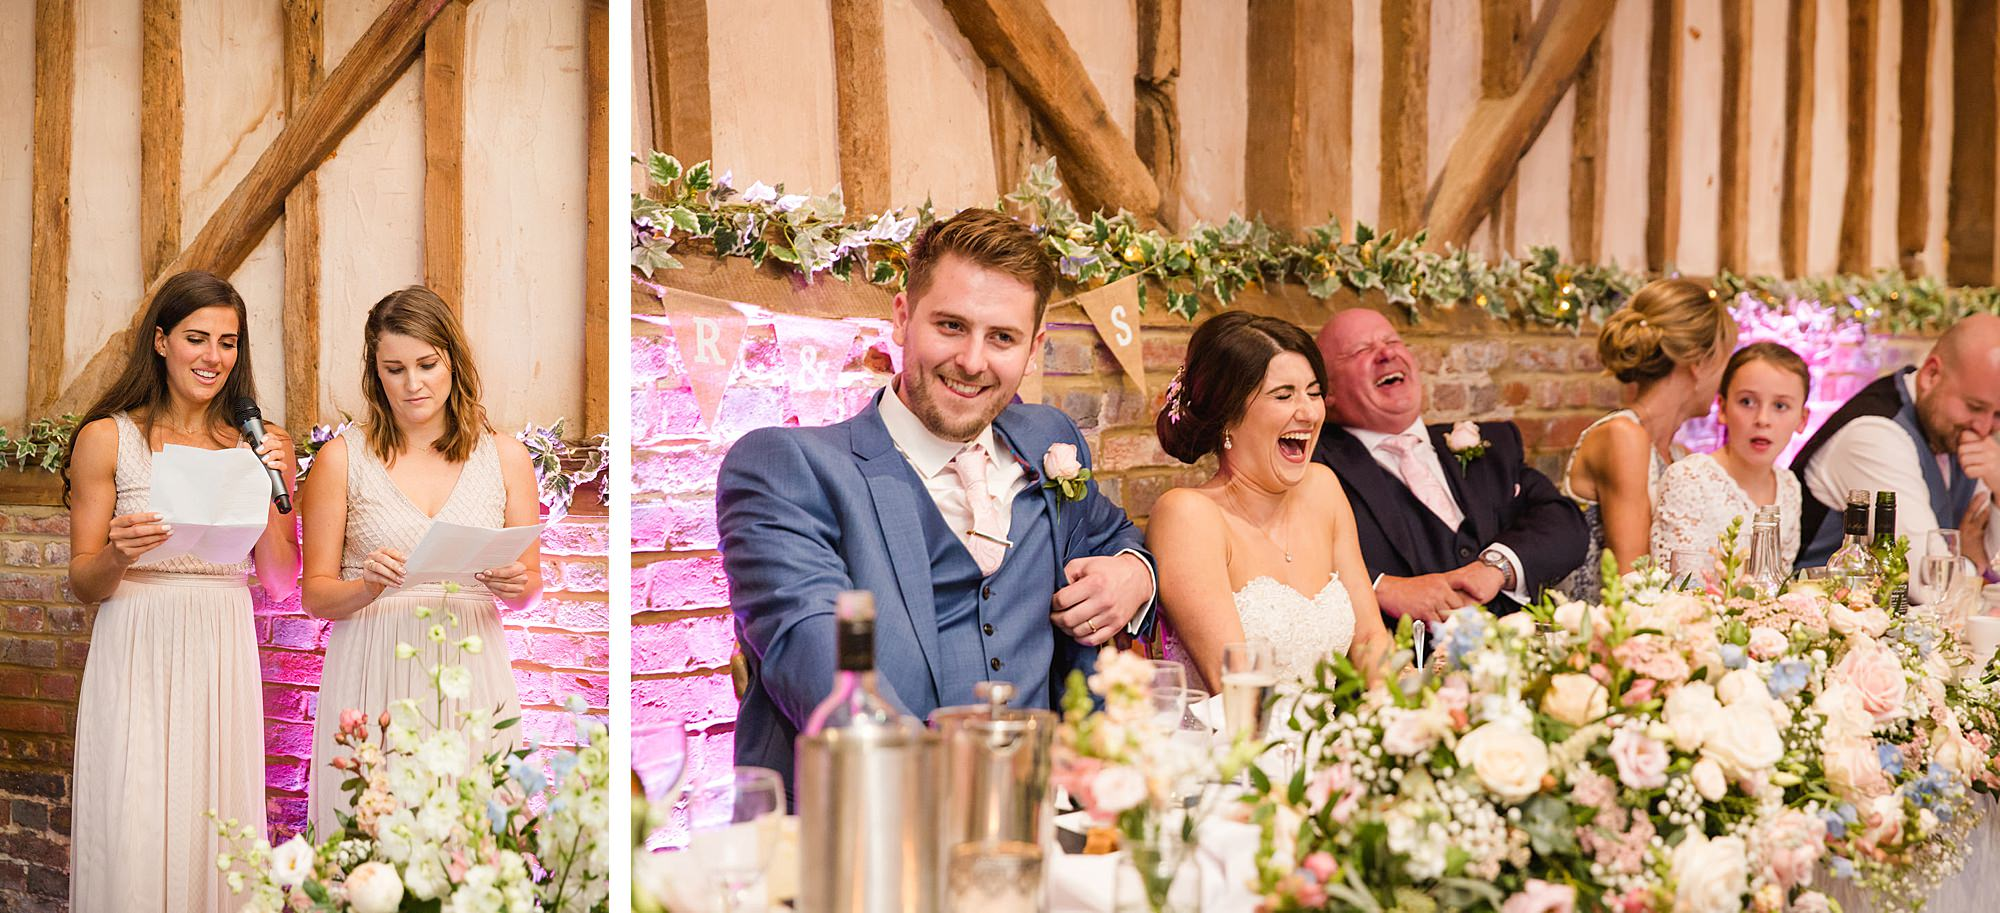 Lillibrooke Manor wedding bride and groom laughing at bridesmaid speech